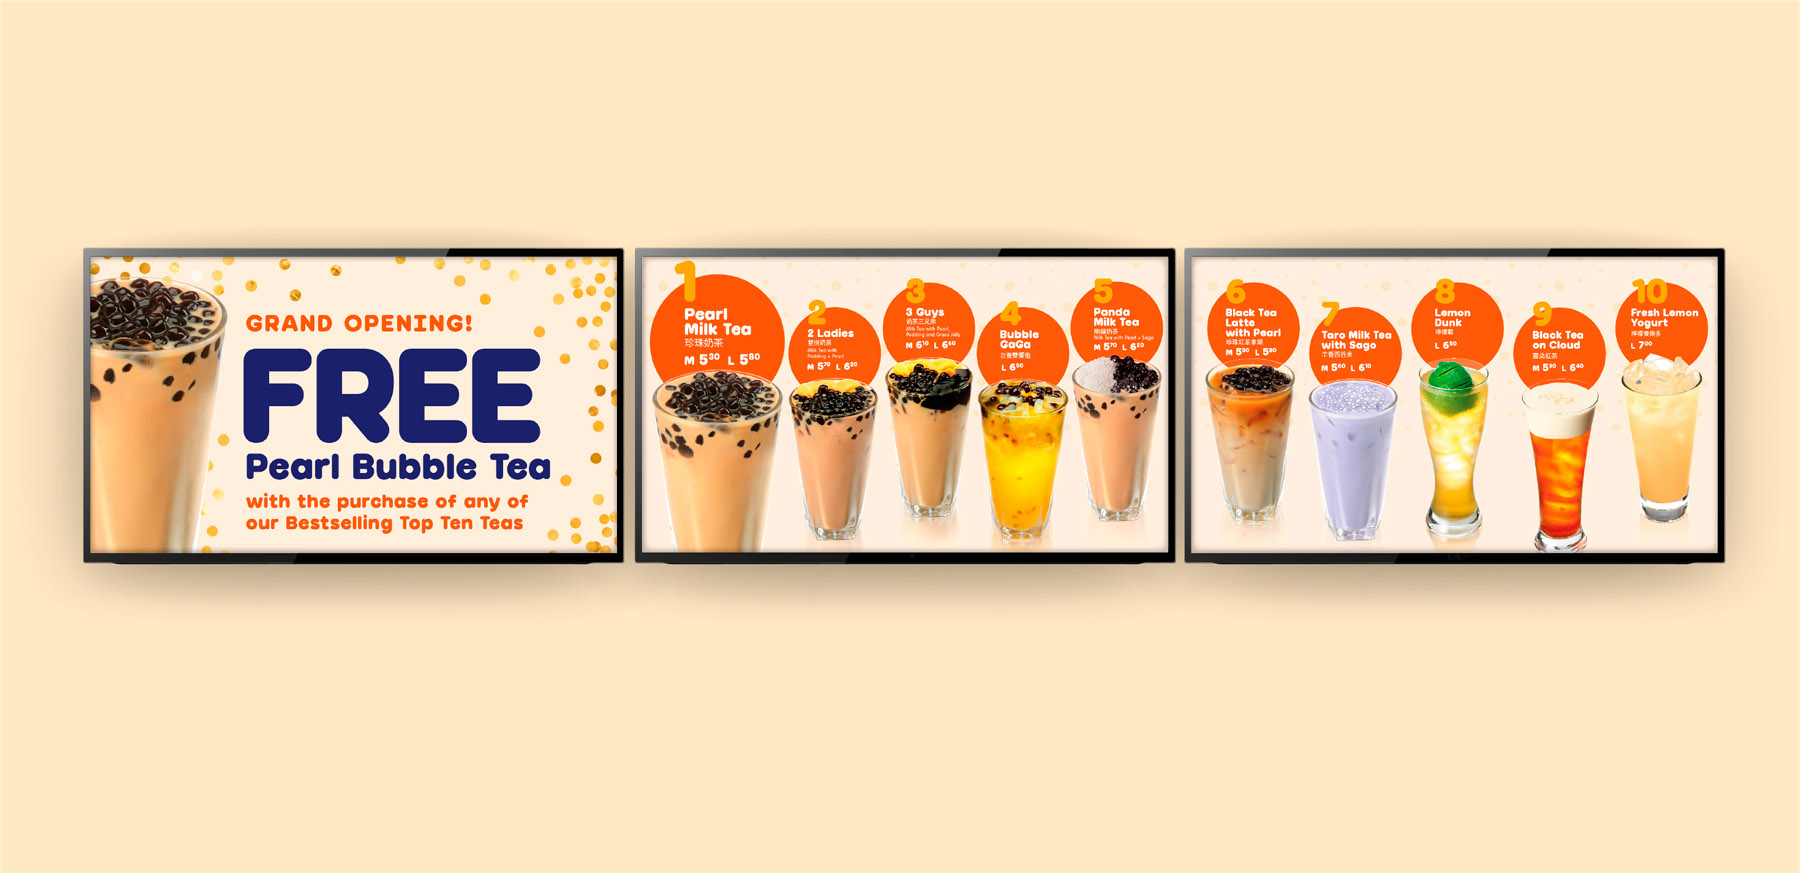 Coco-tea-launch-campaign-digital-screen-menu-1